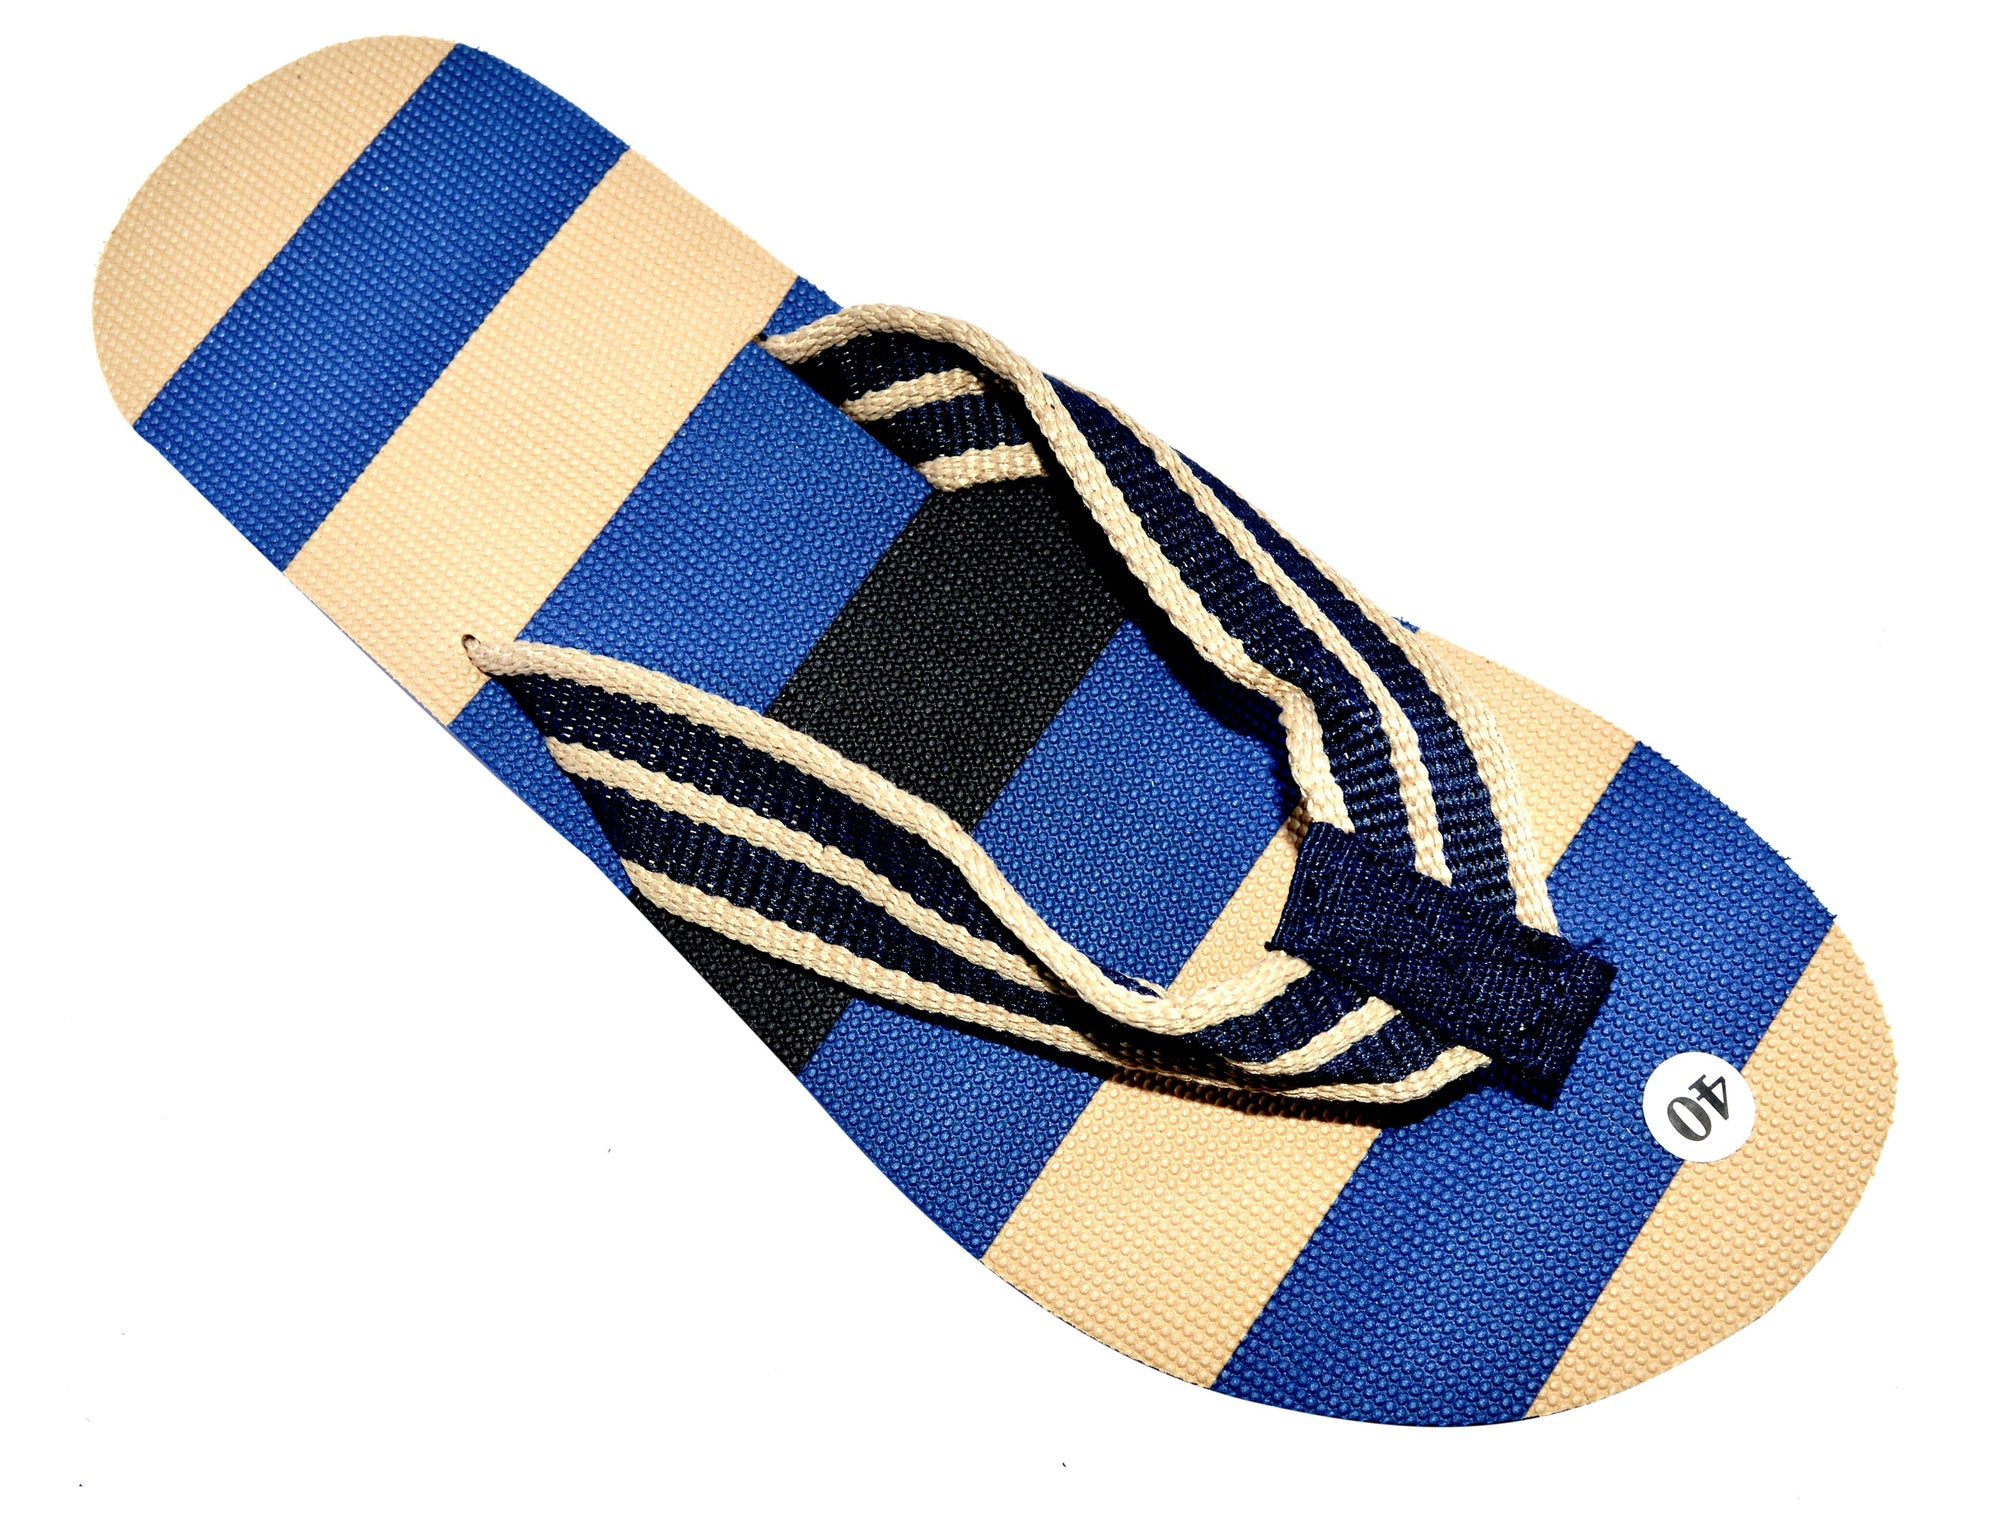 OCTAVE Mens Striped Comfort Strap Design Flip Flops - Navy